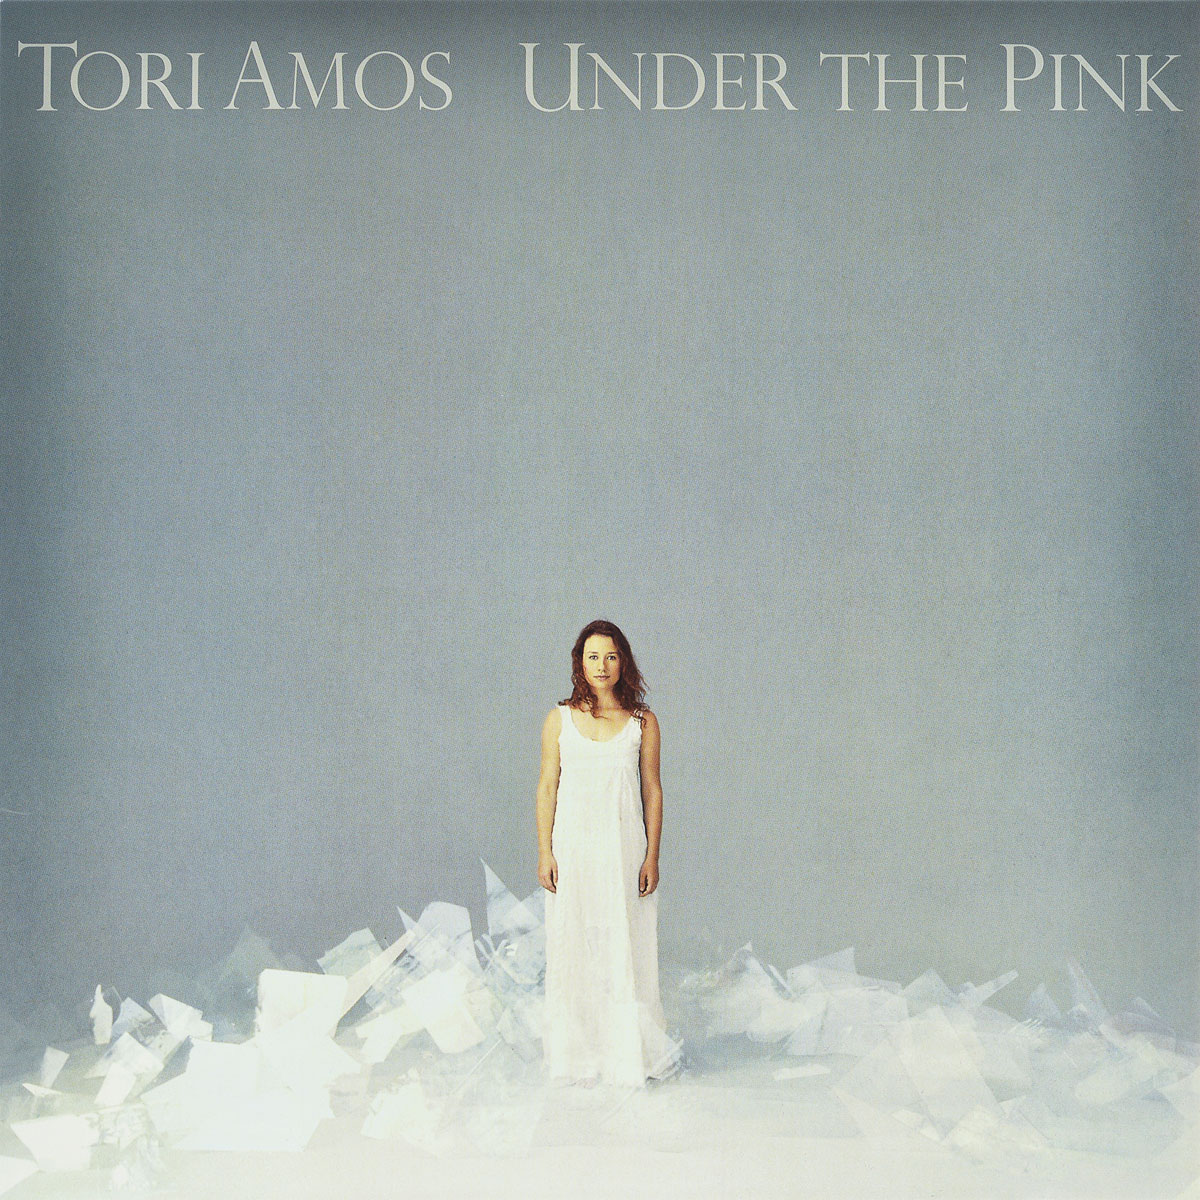 Тори Эмос Tori Amos. Under The Pink (LP) tori amos tori amos   boys for pele  2 lp